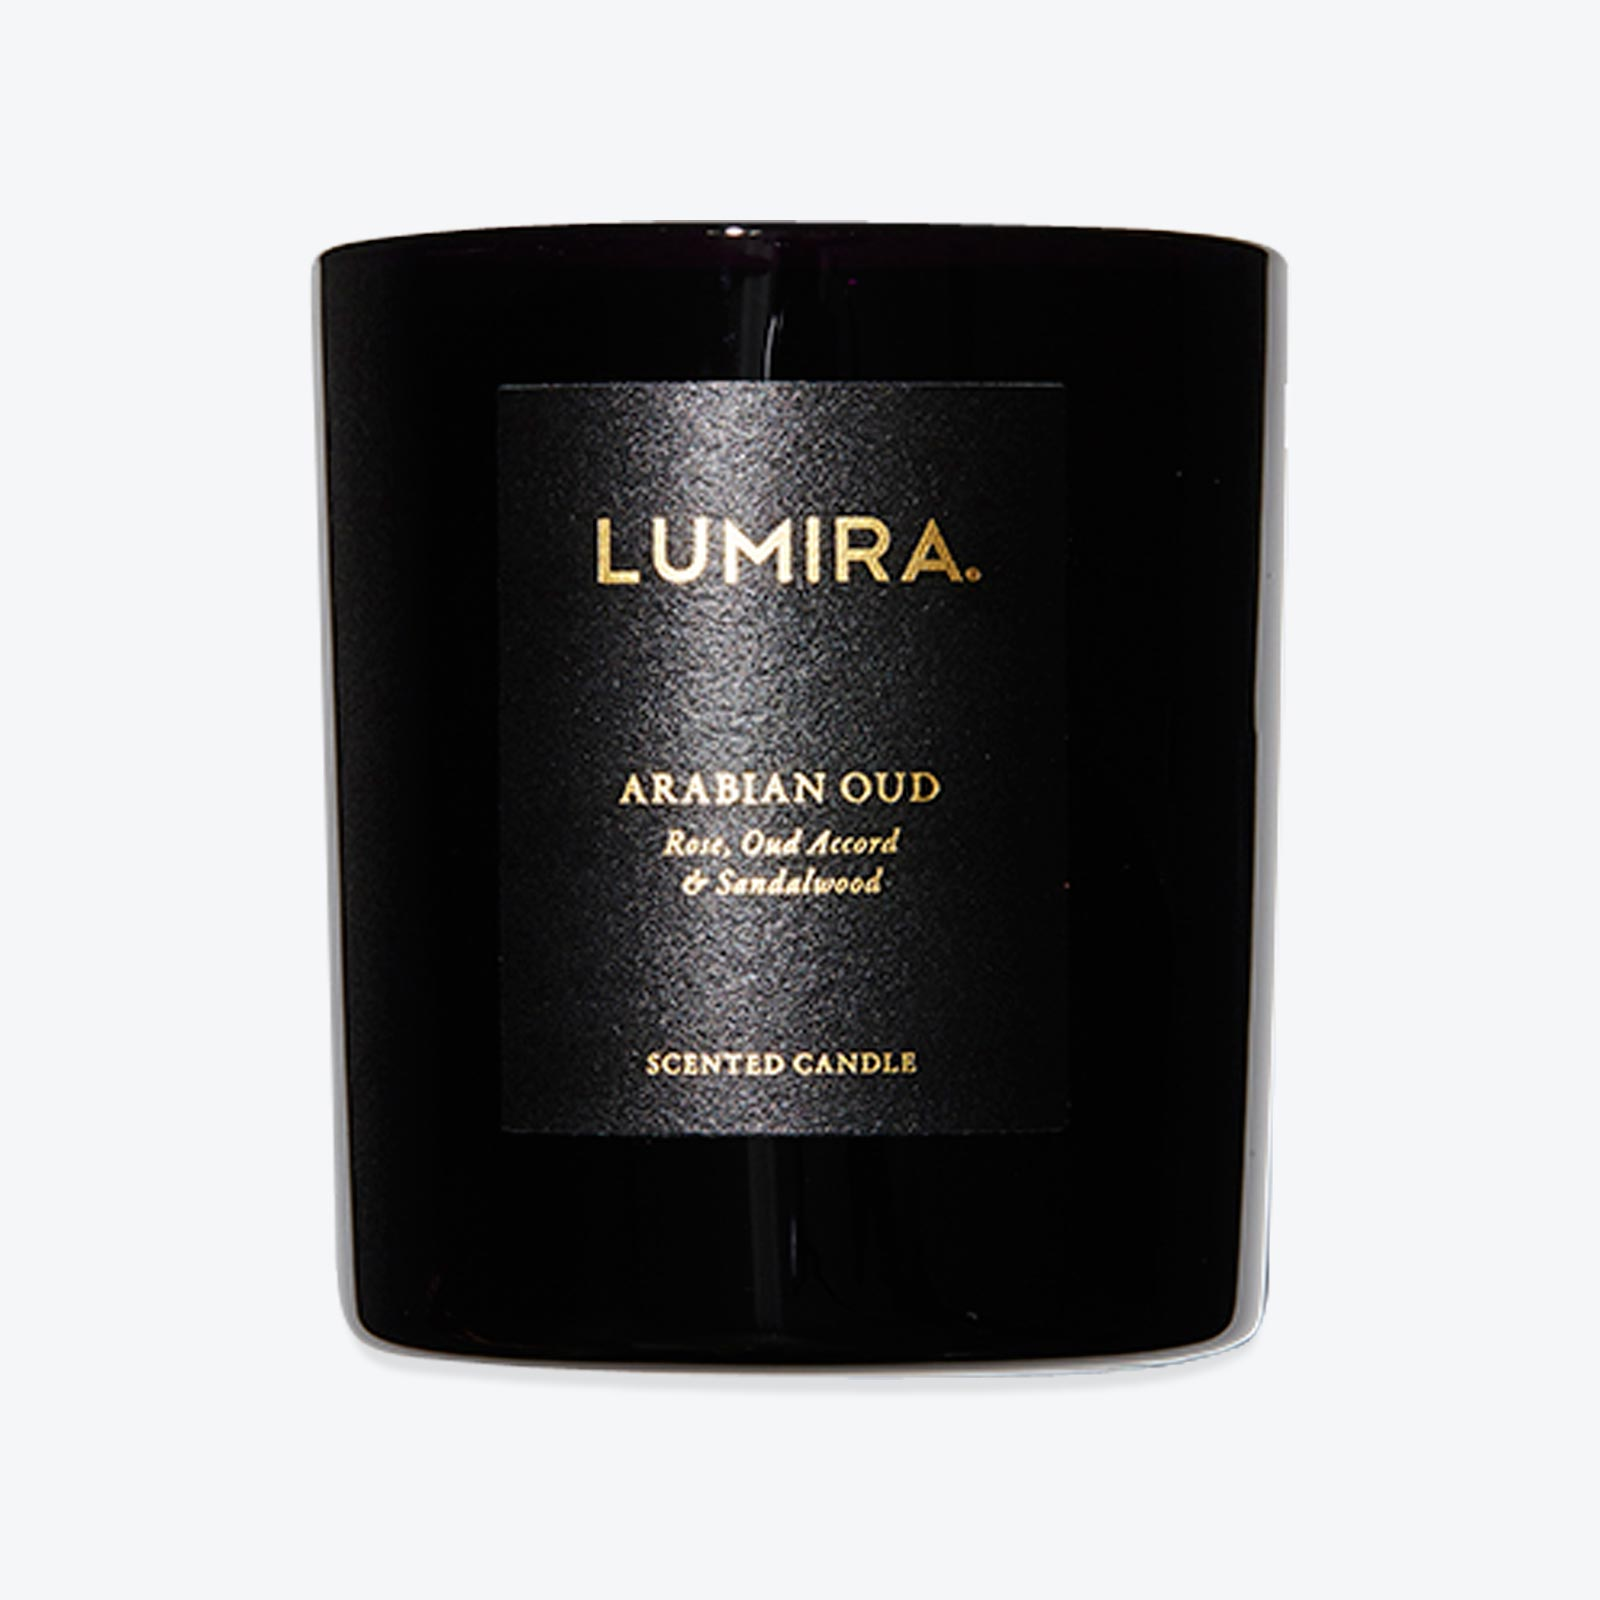 Candle In Arabian Oud By Lumira 01